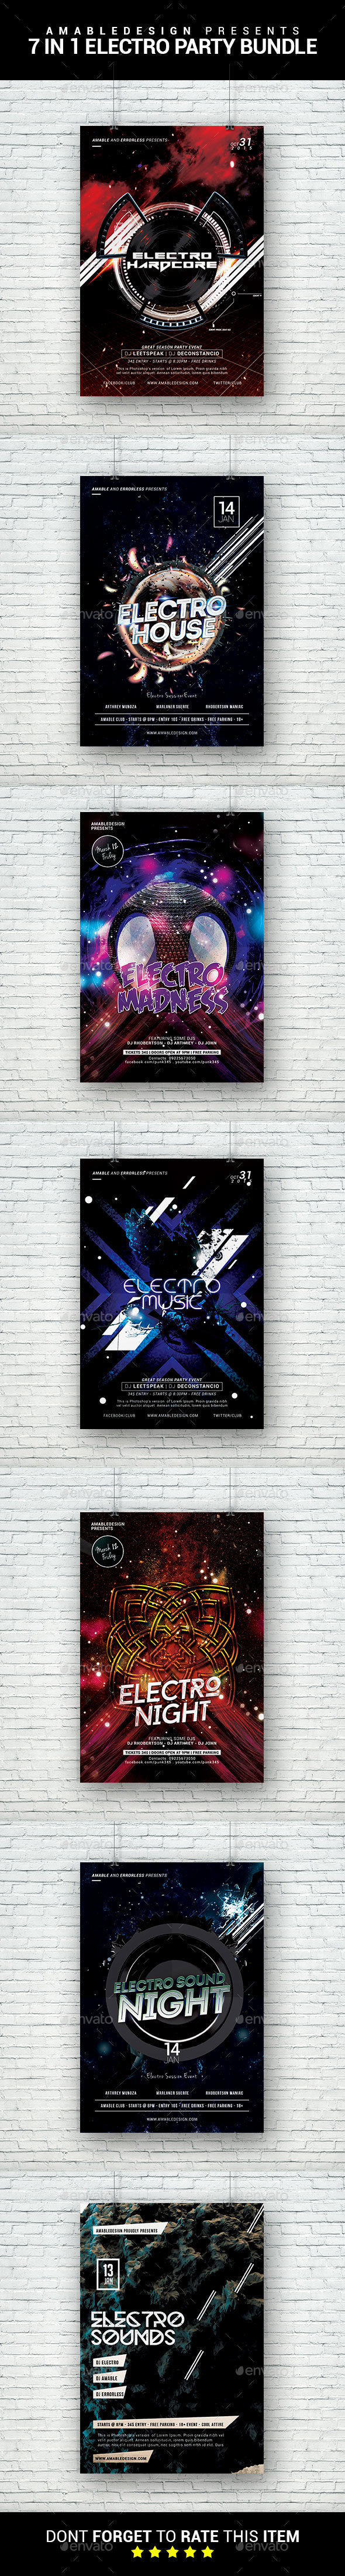 7 in 1 Electro Party Flyer/Poster Bundle - Clubs & Parties Events